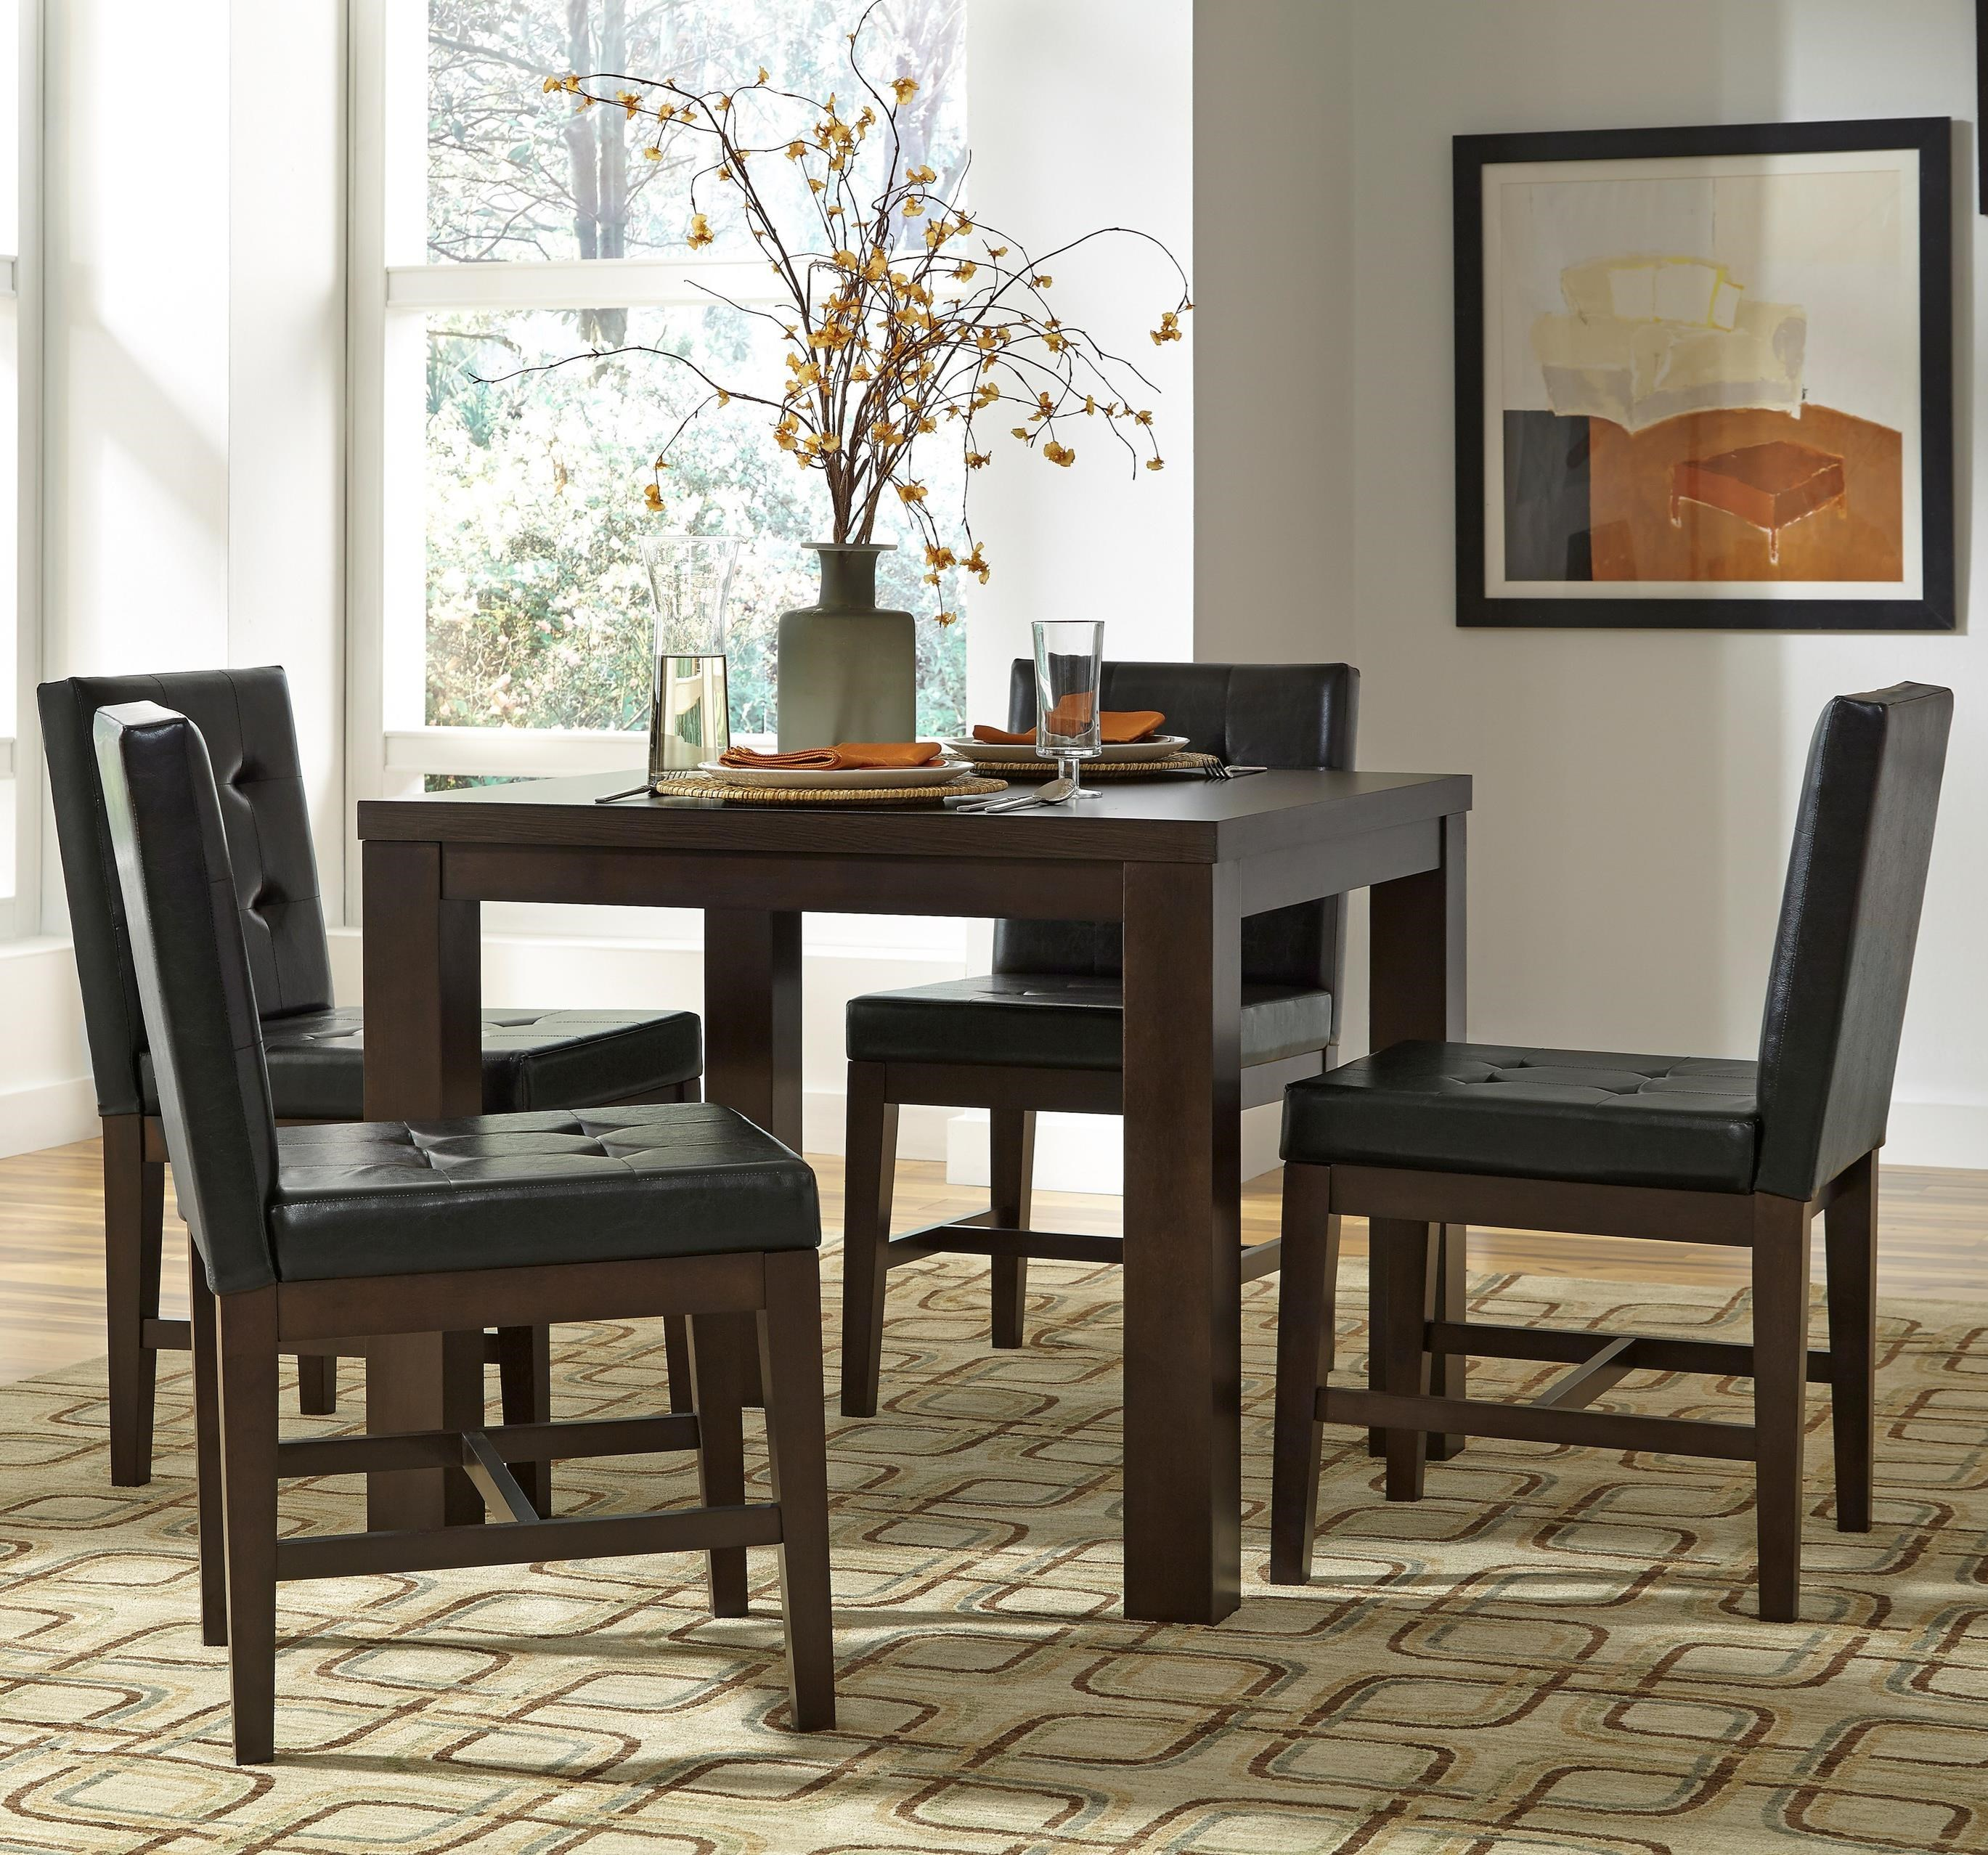 Athena 5pc Dining Room Group by Progressive Furniture at Value City Furniture